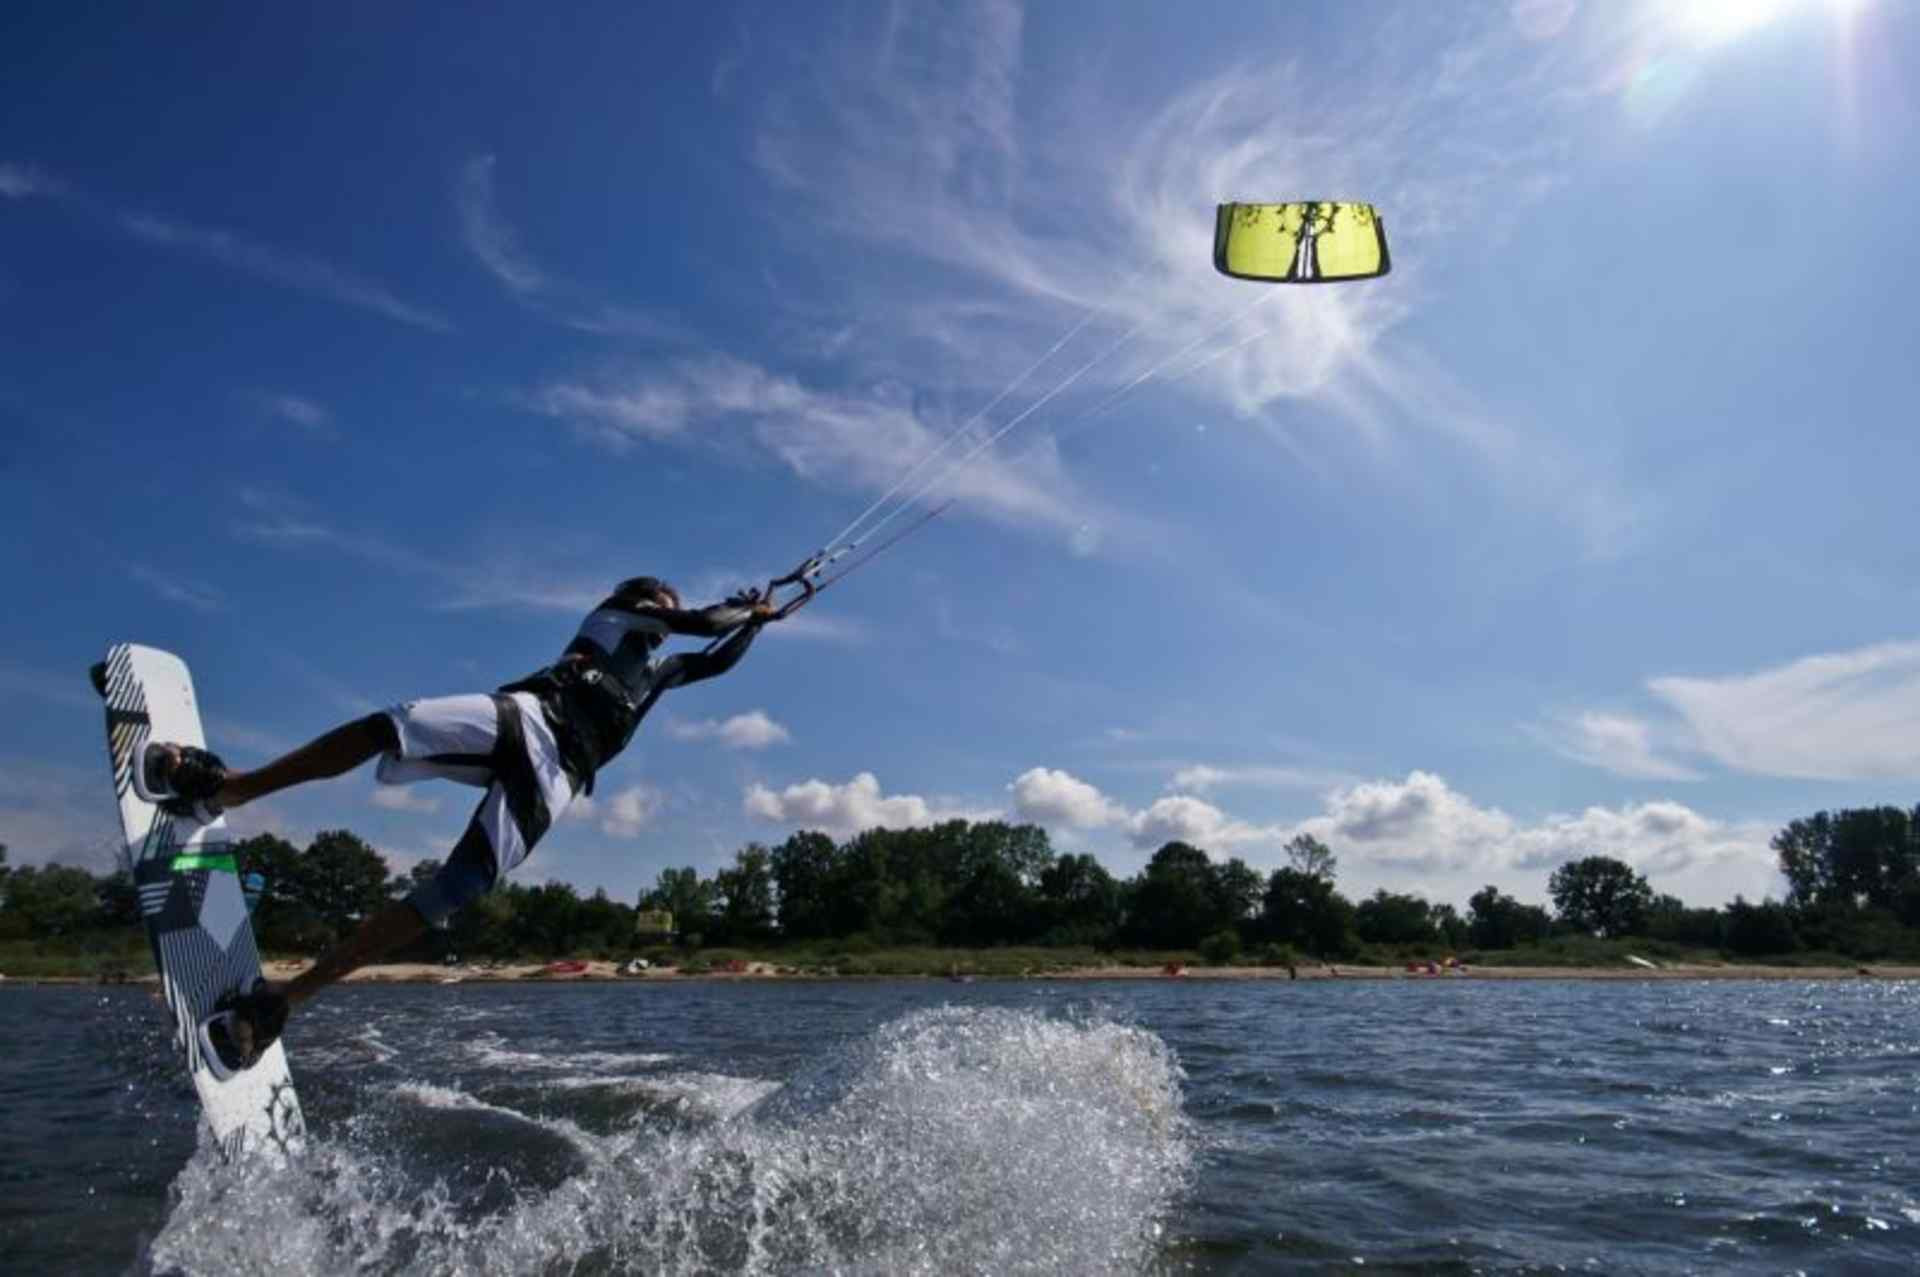 Kiteschool Nextlevel Kiteboarding